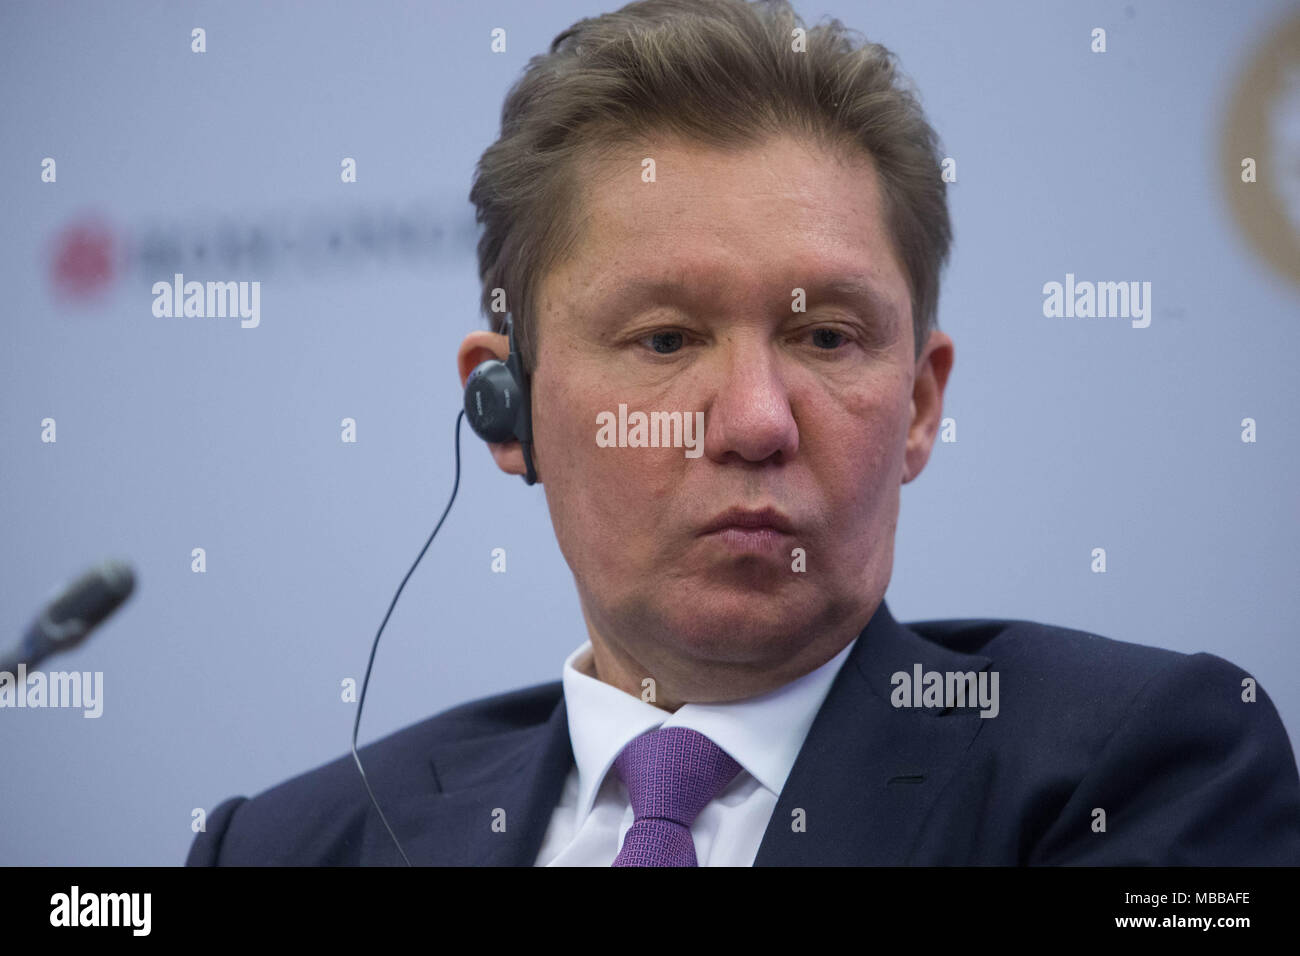 June 1, 2017 - Saint Petersburg, Russia - Gazprom's CEO, Alexey Miller attends a session of the St. Petersburg International Economic Forum (SPIEF)..06 April 2018 have been put on sanctions list by the US Department of the Treasurys Office of Foreign Assets Control (OFAC) in consultation with the US Department of State. (Credit Image: © Igor Russak/SOPA Images via ZUMA Wire) - Stock Image